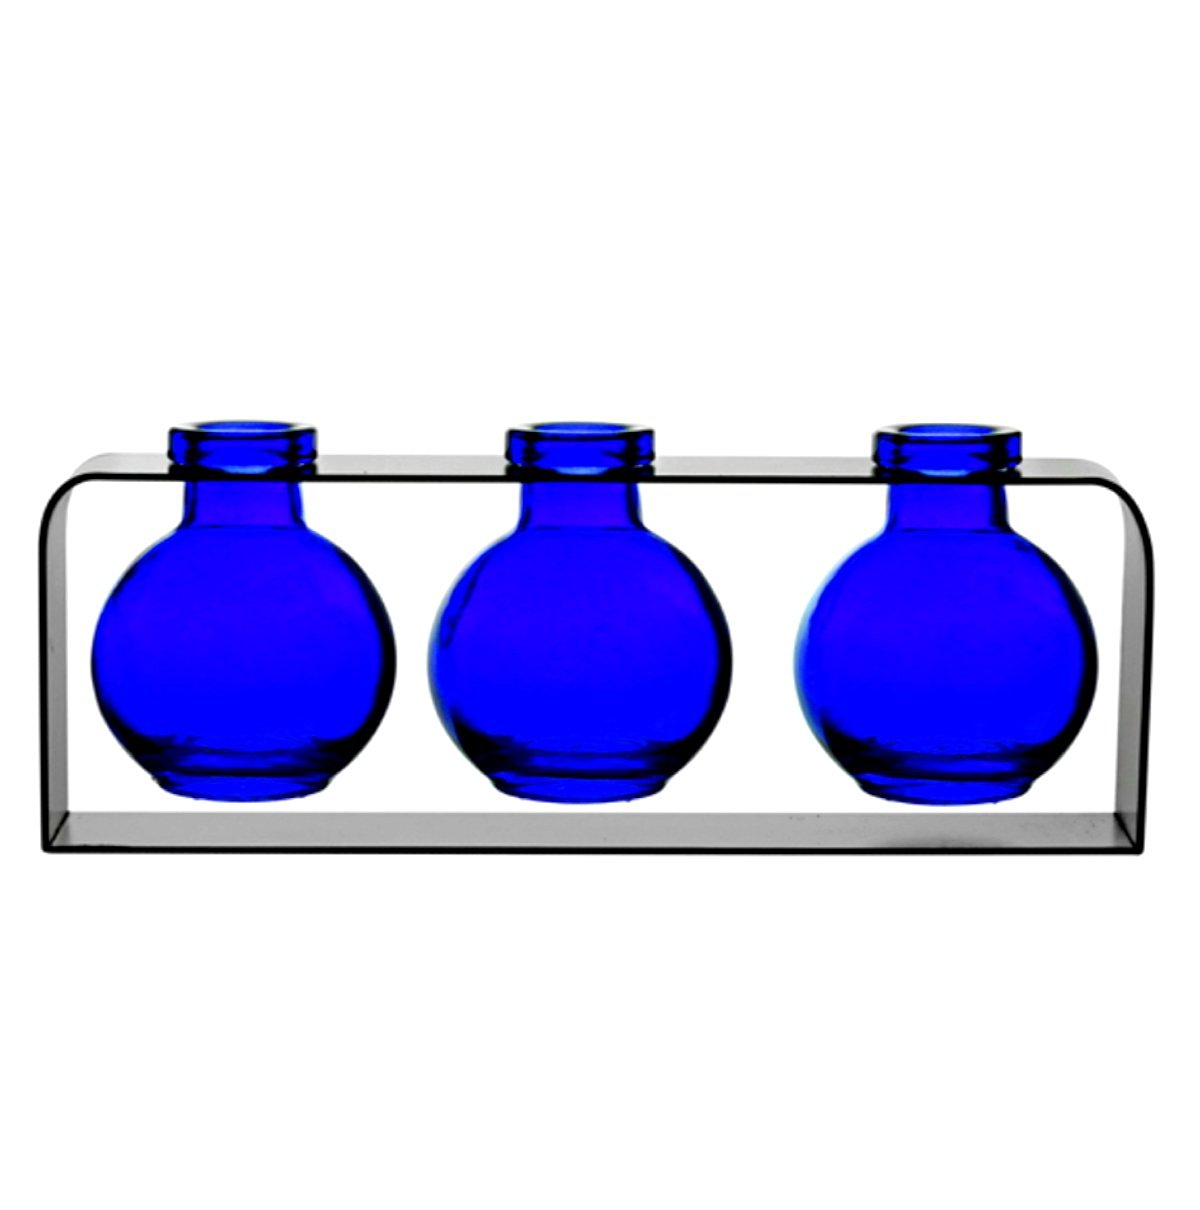 Cheap funky vases find funky vases deals on line at alibaba get quotations small glass vases colored bottles decorative glass vases unique vase g217m cobalt blue reviewsmspy